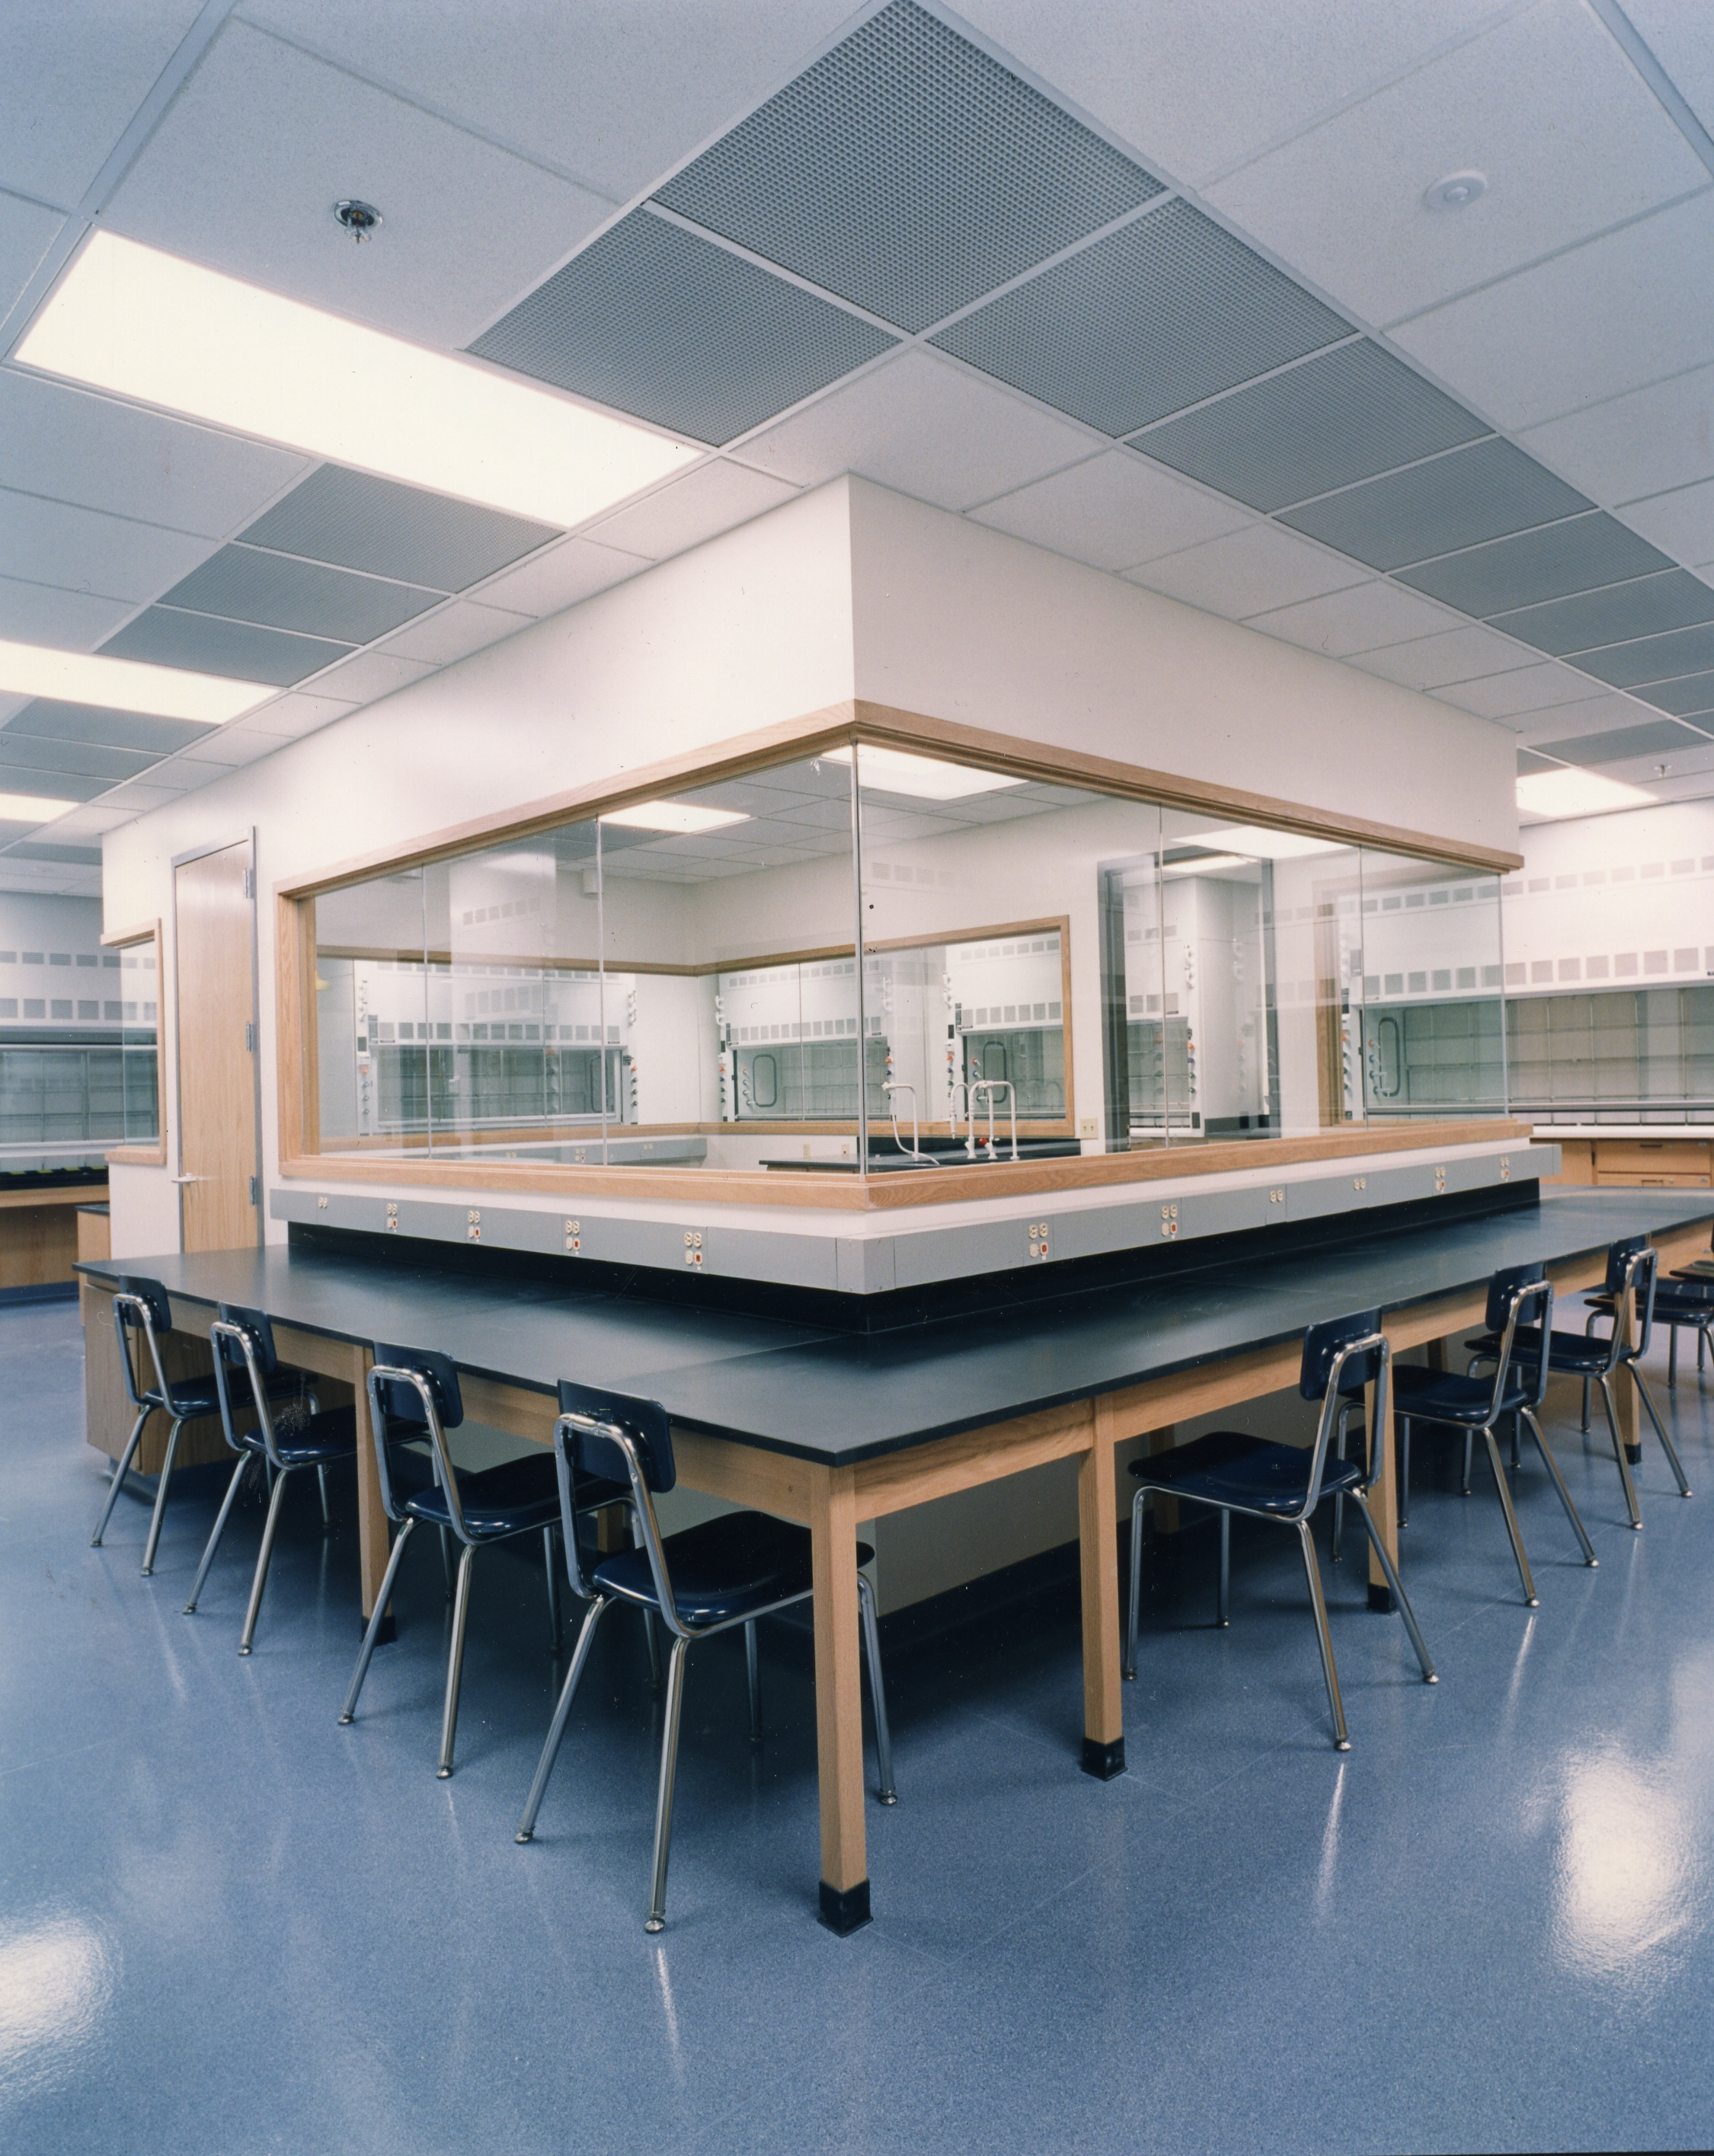 image of lab at Edgewood College